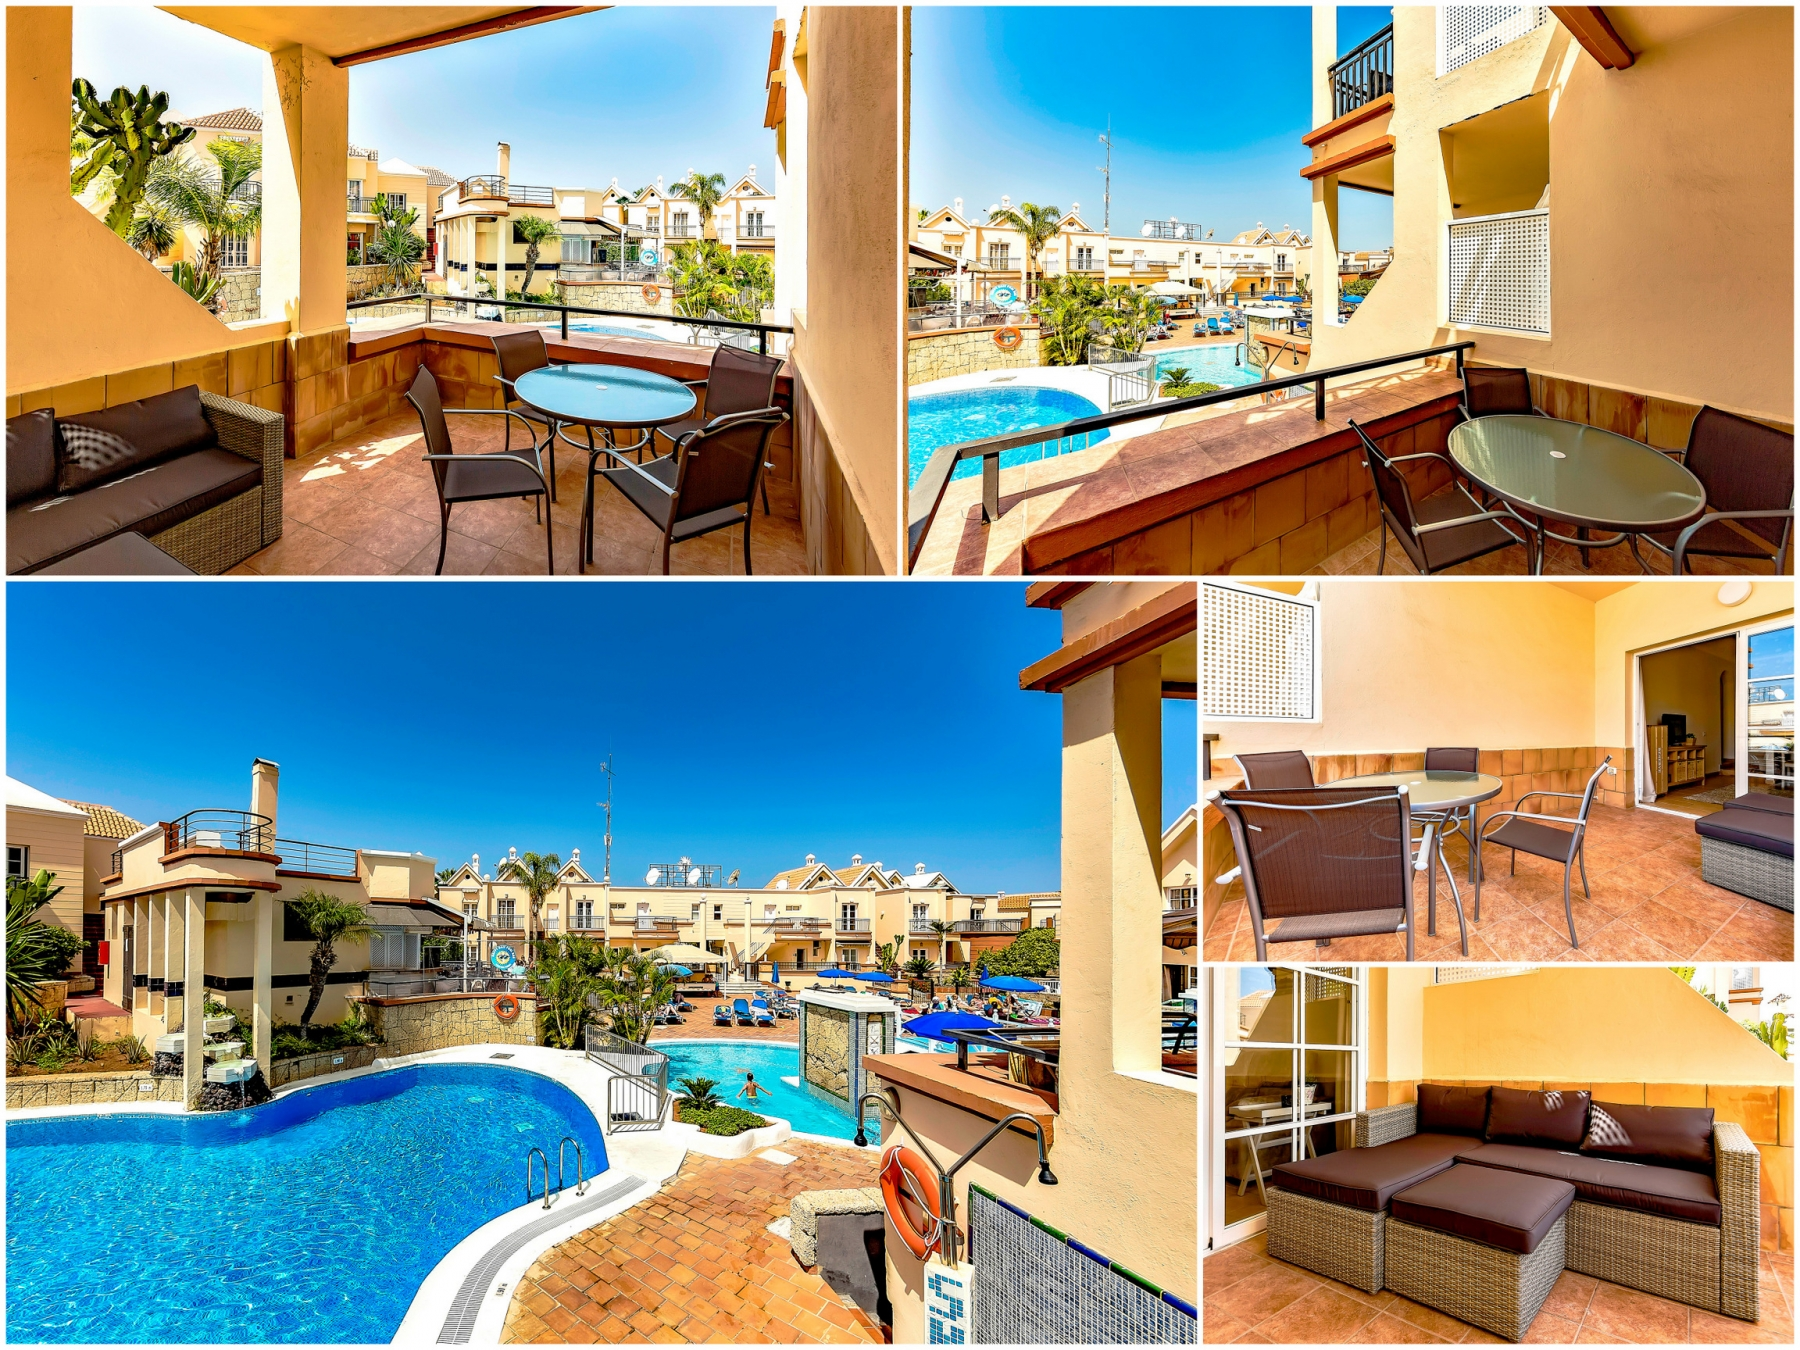 Properties for Sale in Tenerife, Canary Islands, Spain | SylkWayStar Real Estate. 1 bedroom apartment Yucca Park. Image-22619